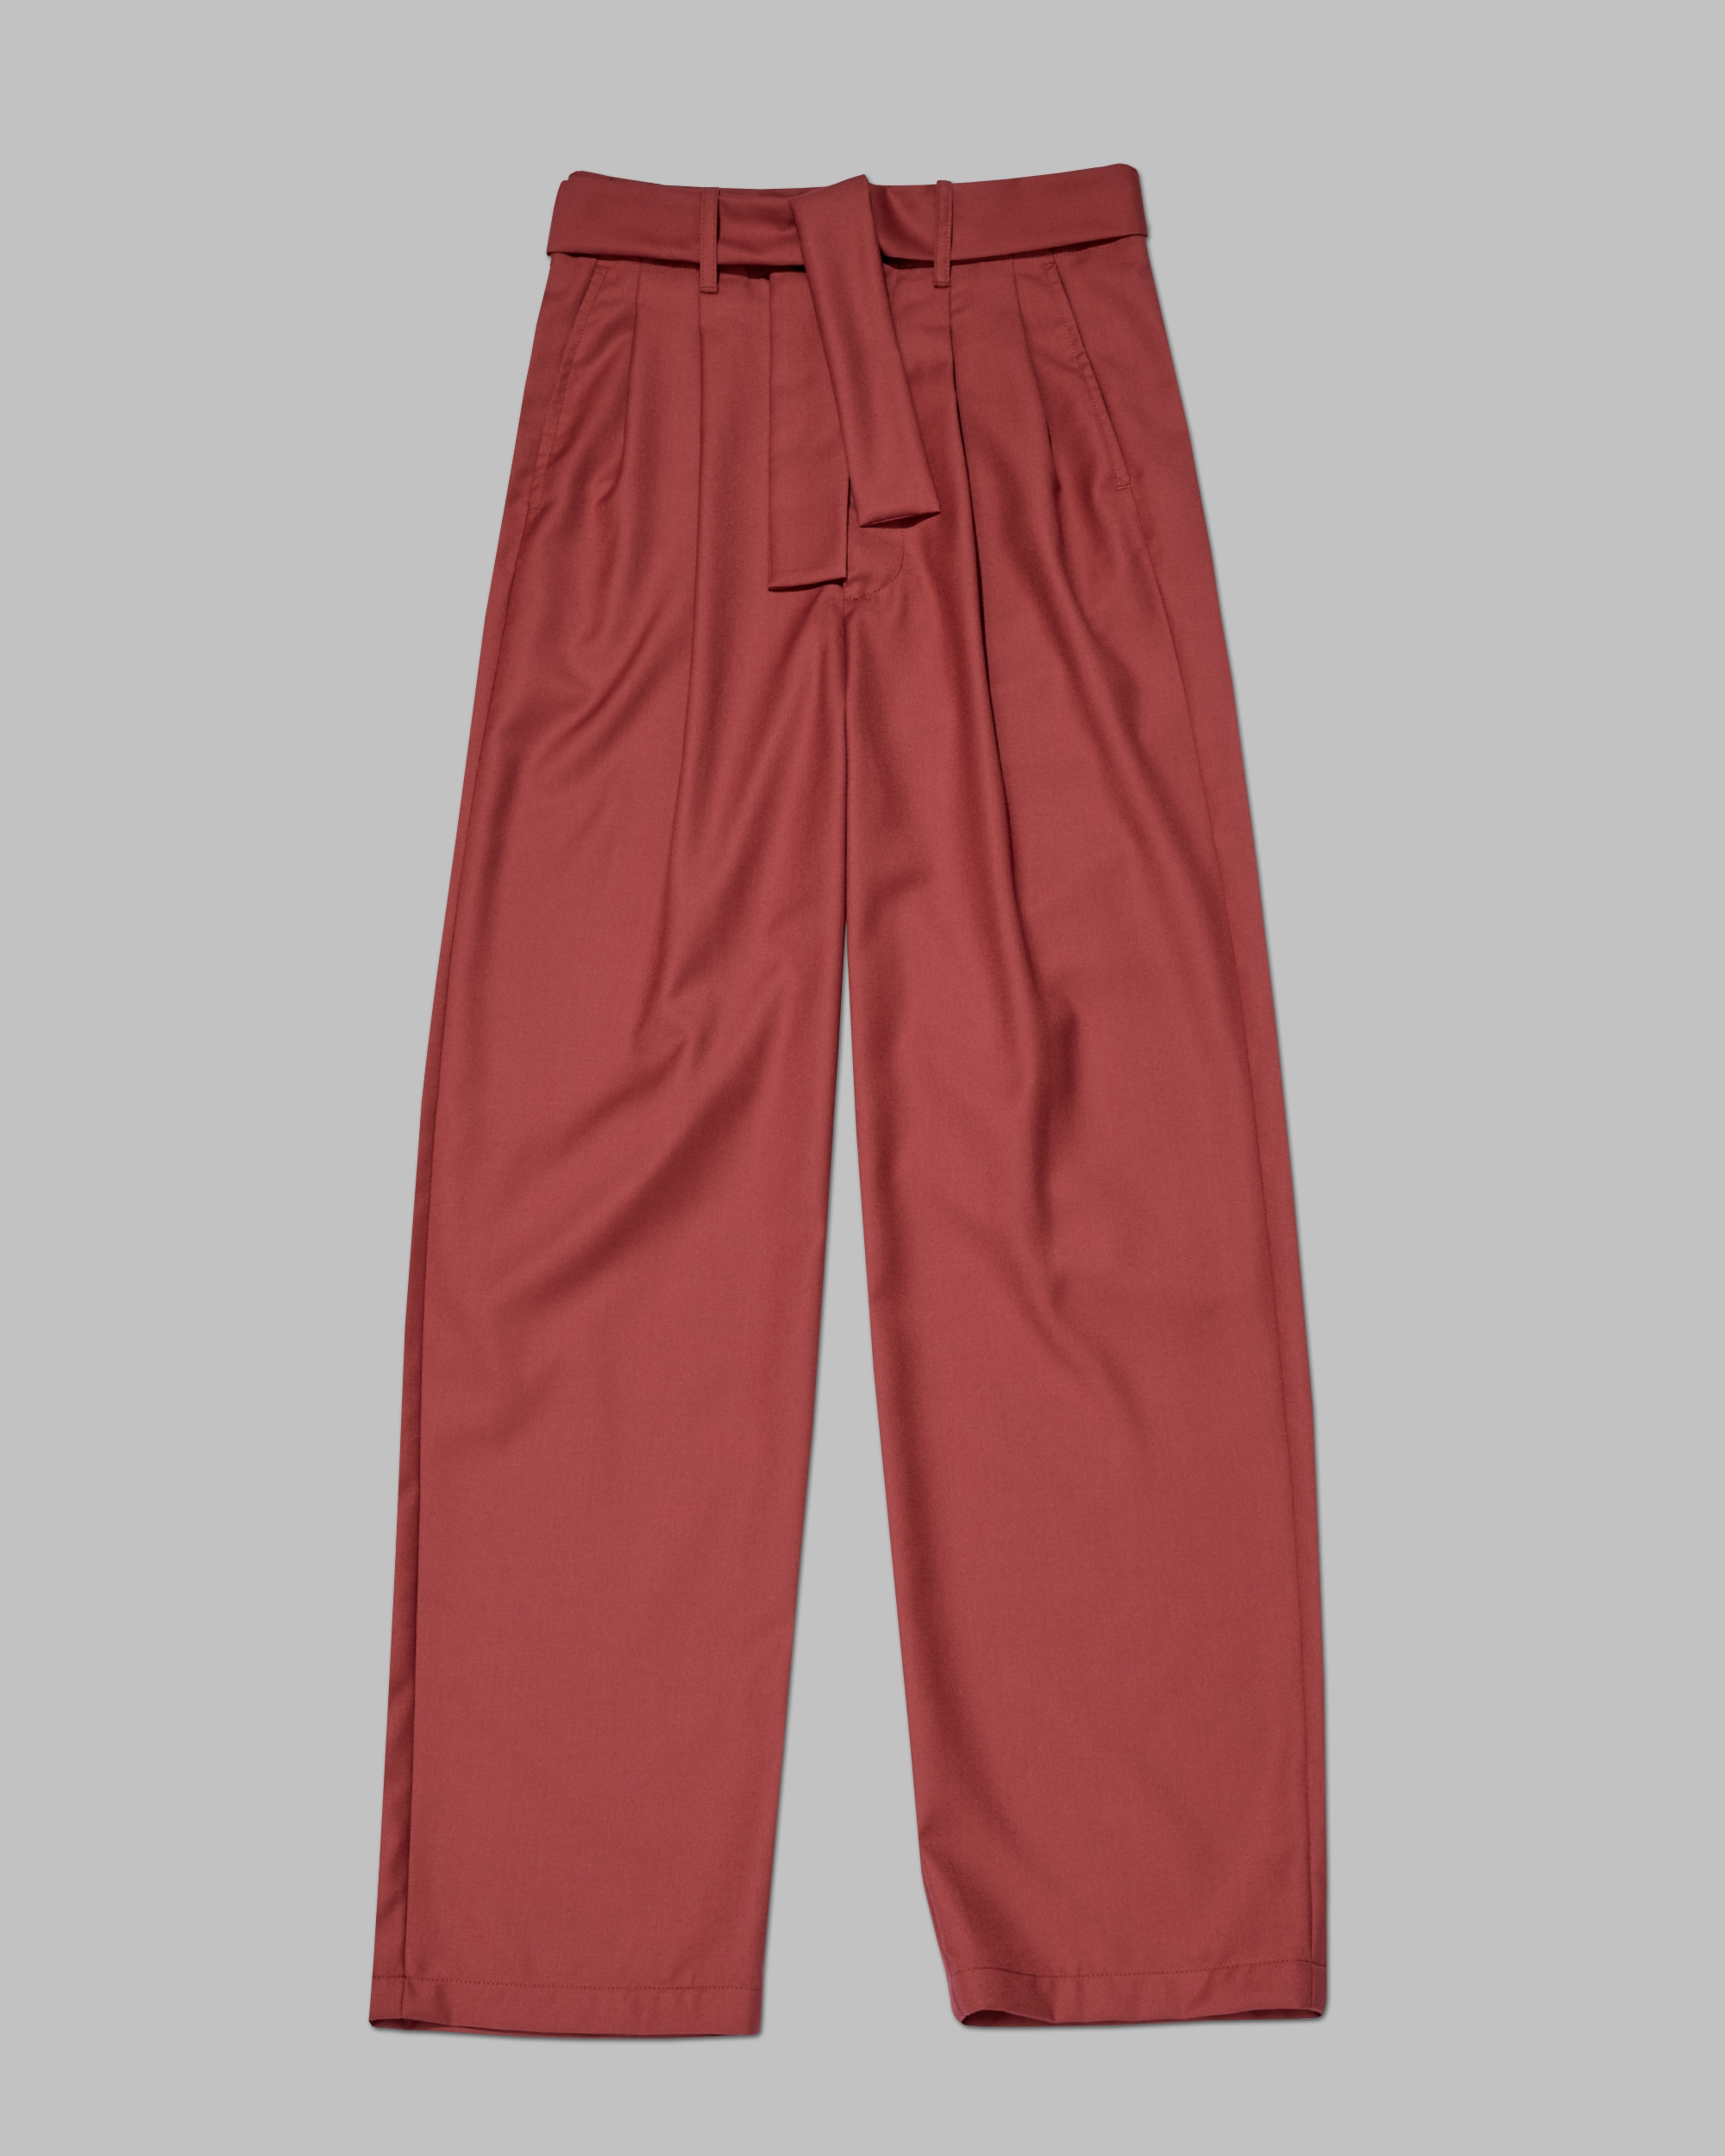 Shop Luxury Basics By One DNA. Unisex Pant. Red.